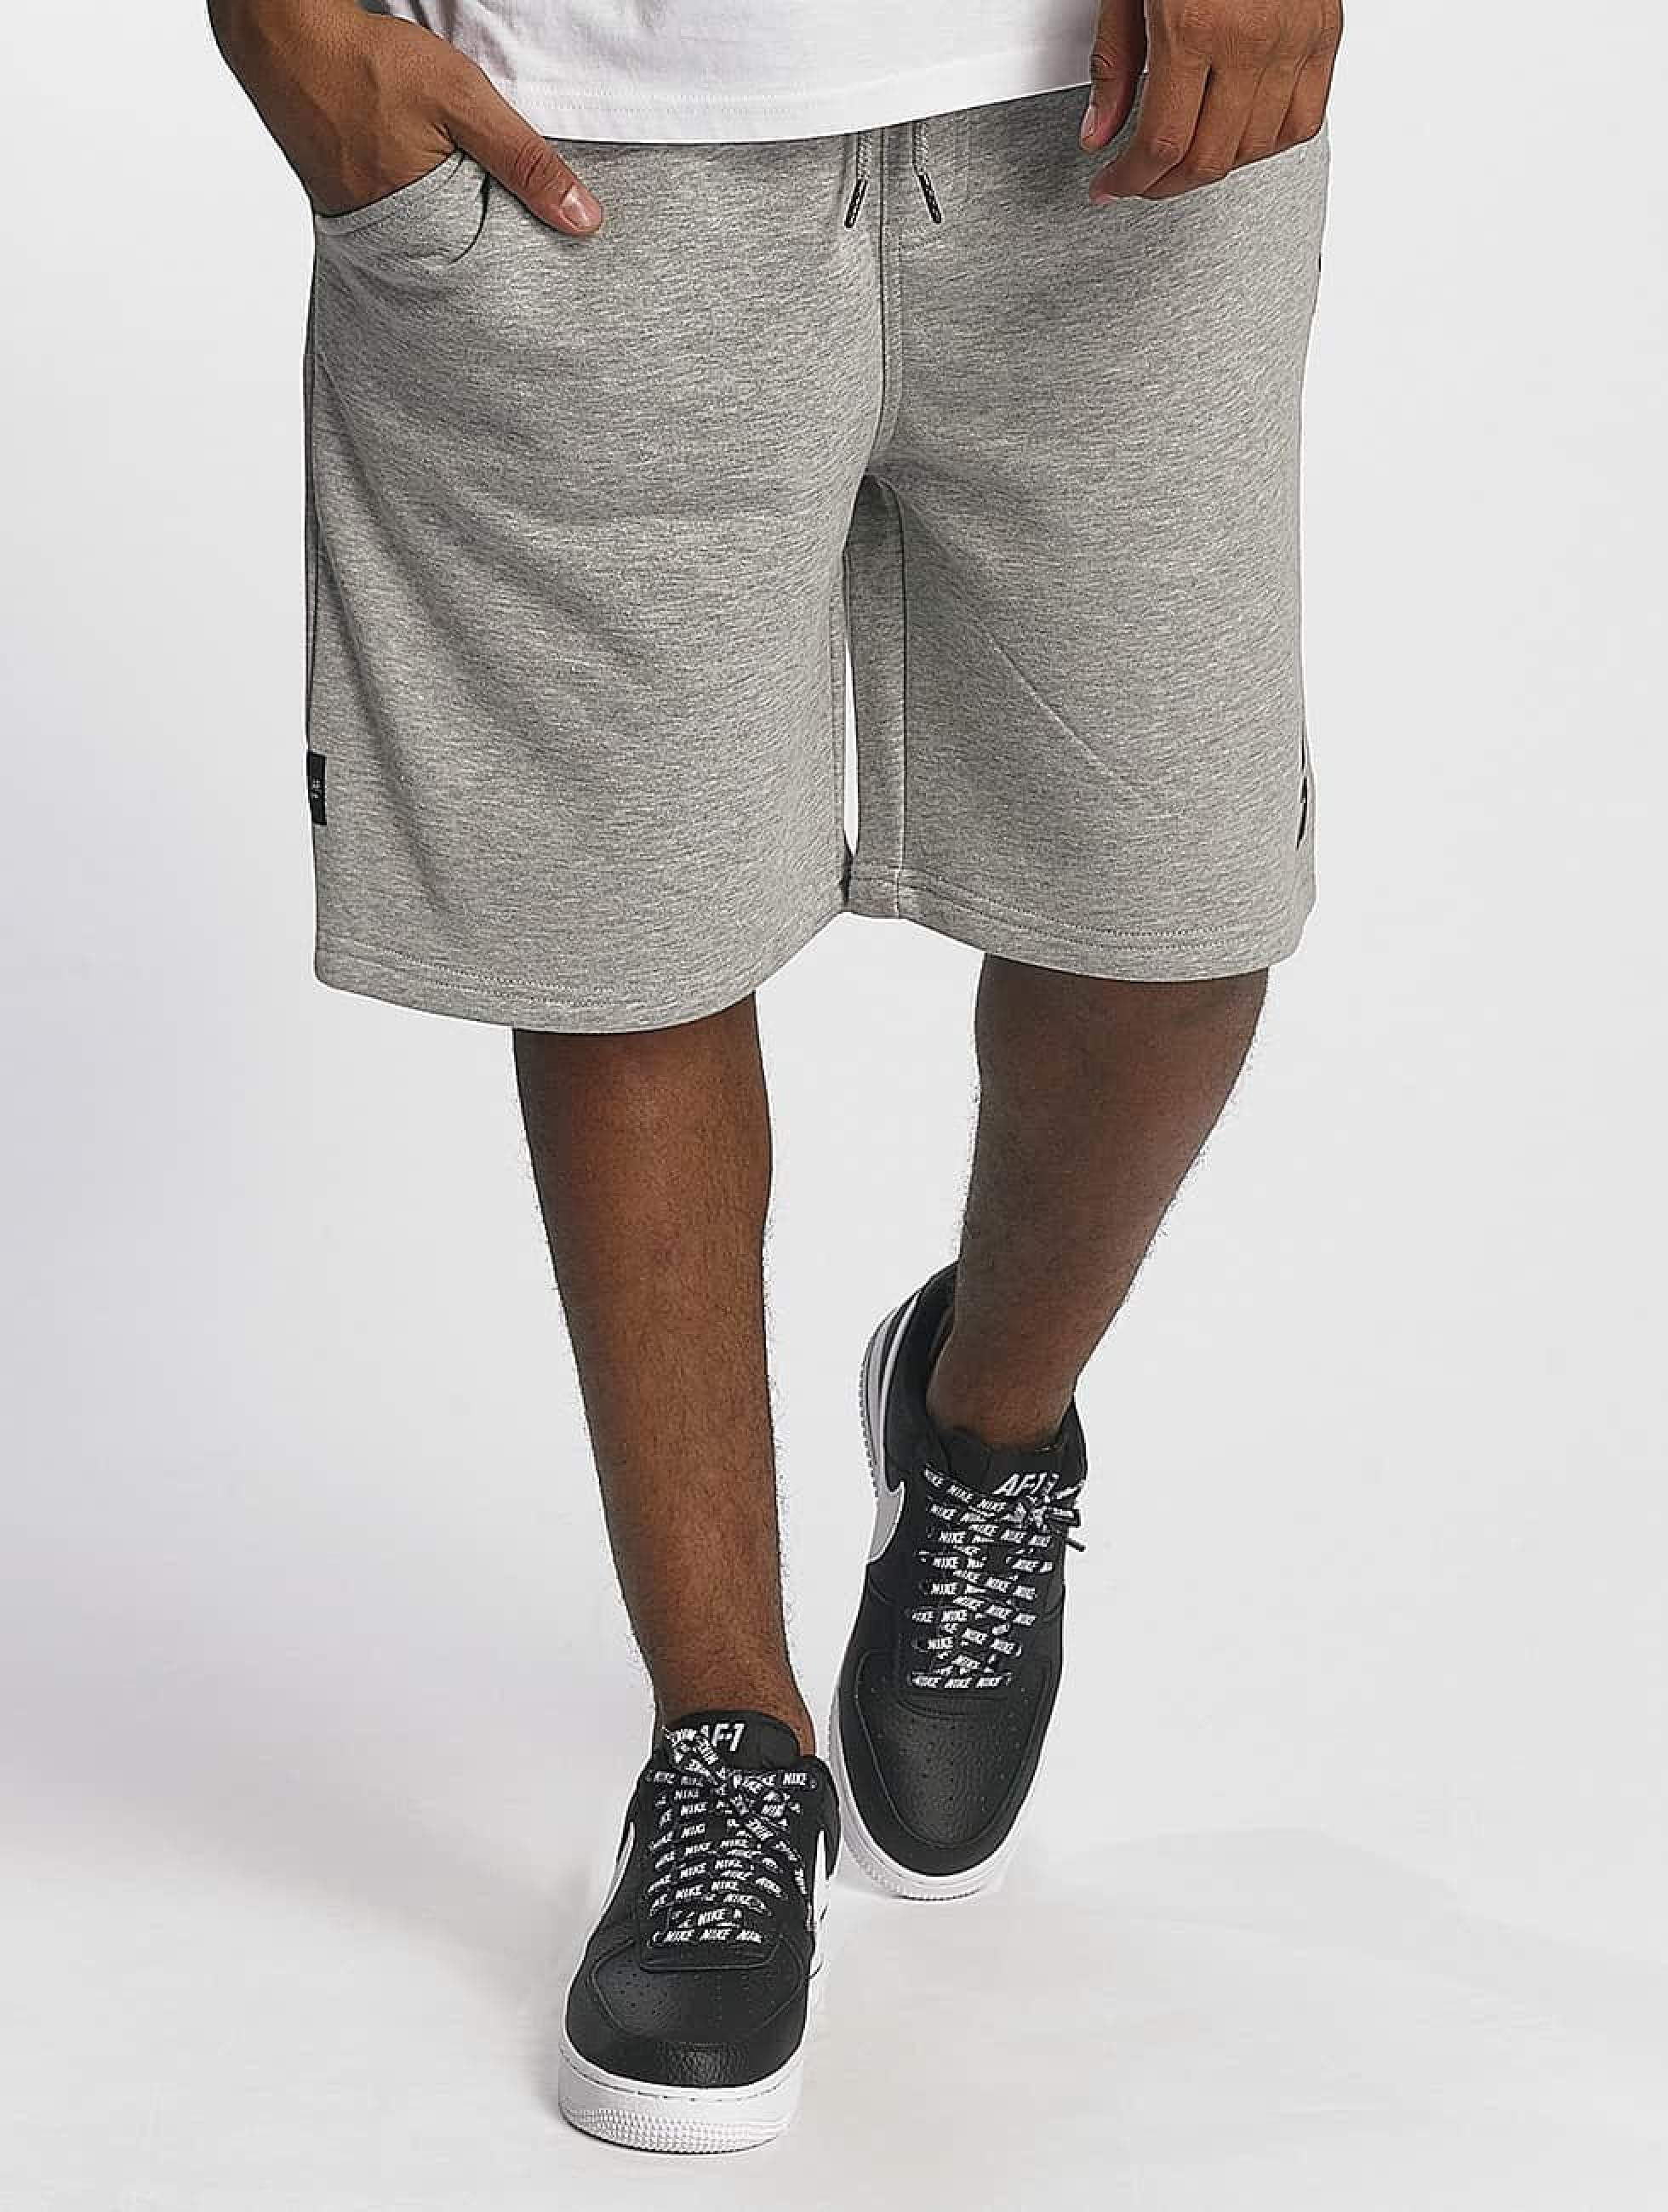 Rocawear / Short Basic in grey L